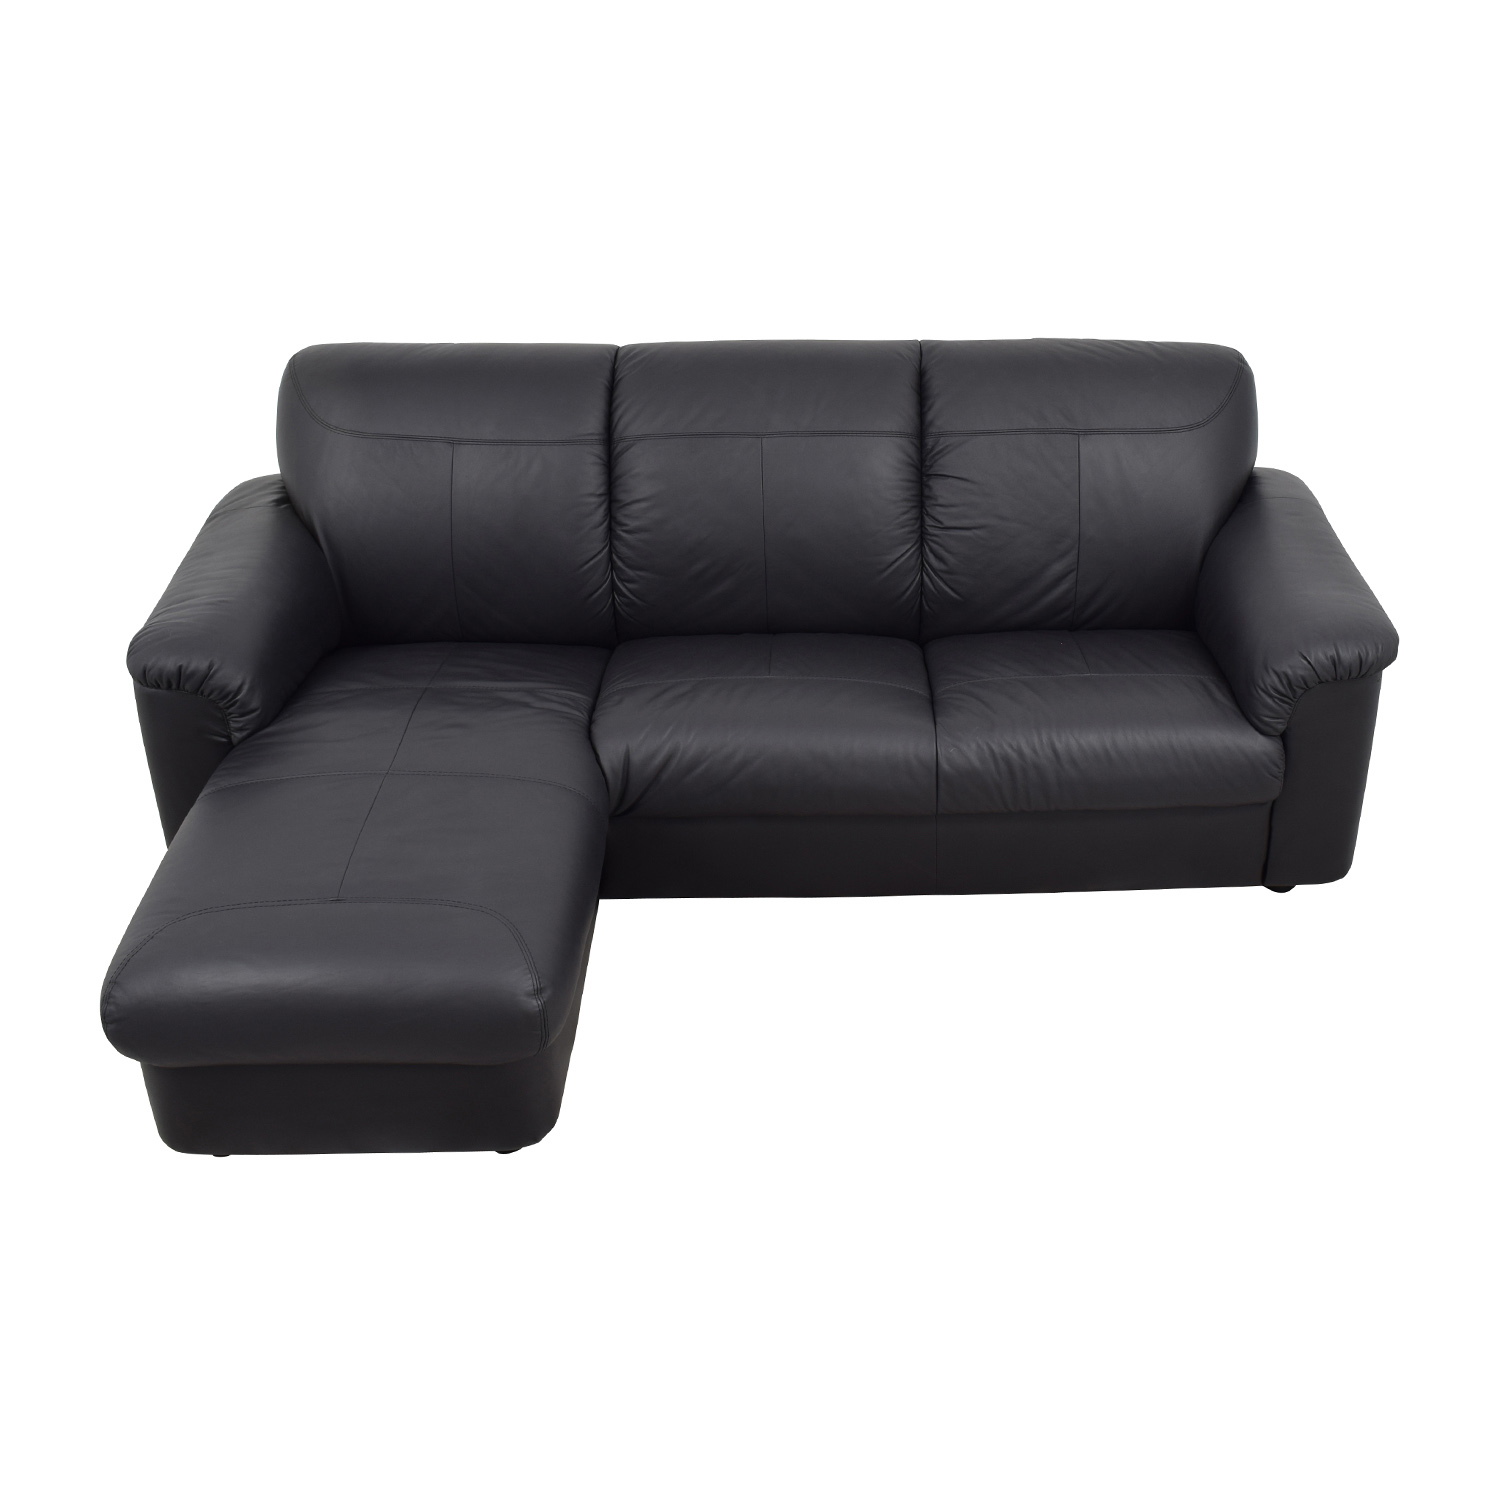 IKEA IKEA Black 3-Piece Leather Sectional second hand